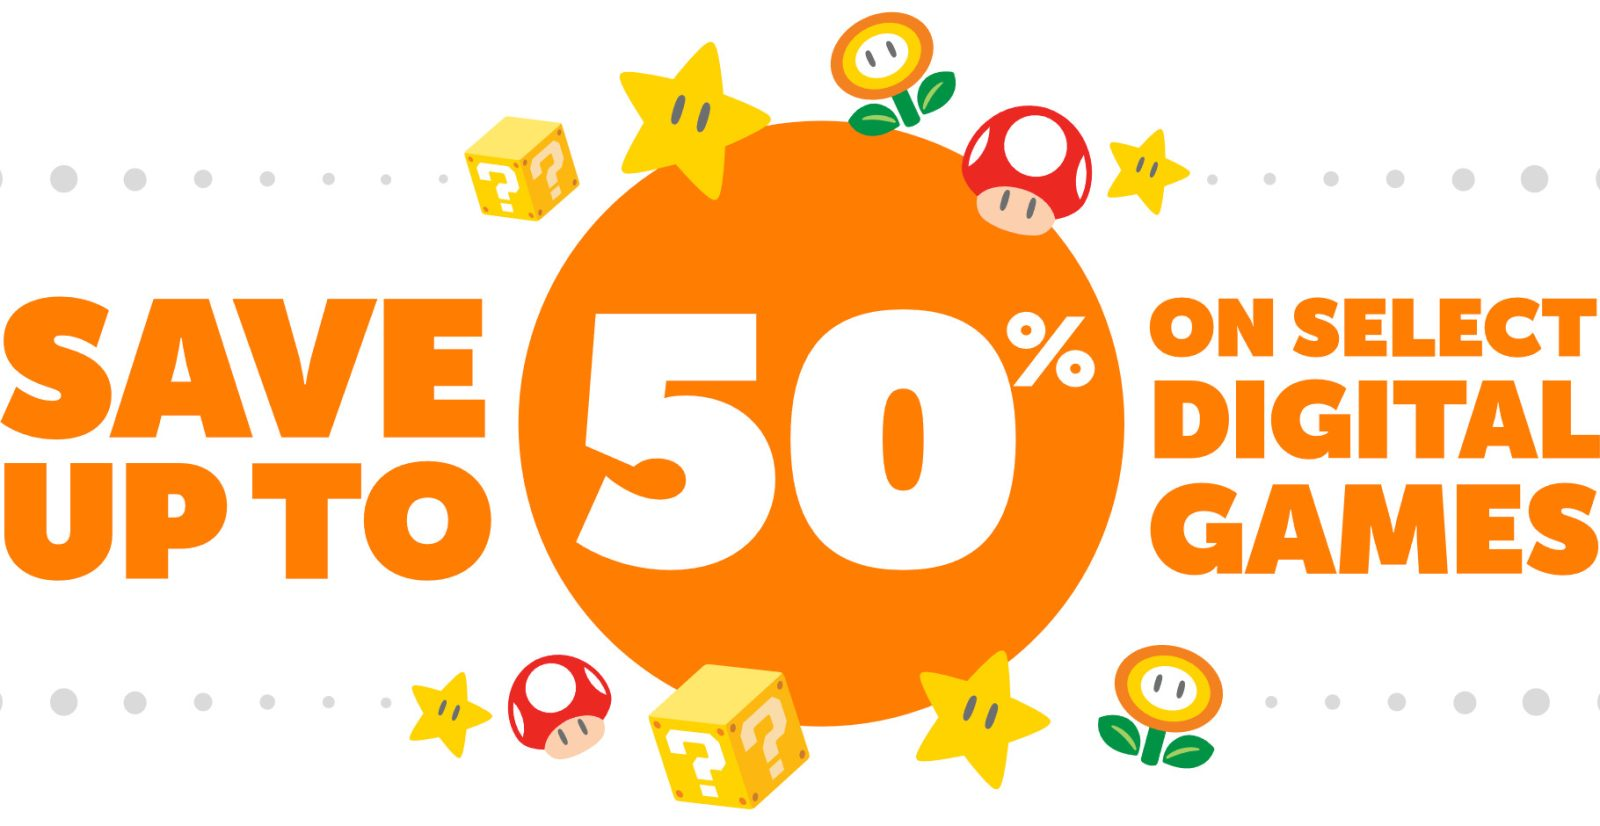 Nintendo E3 2019 eShop Sale now live at up to 50% off